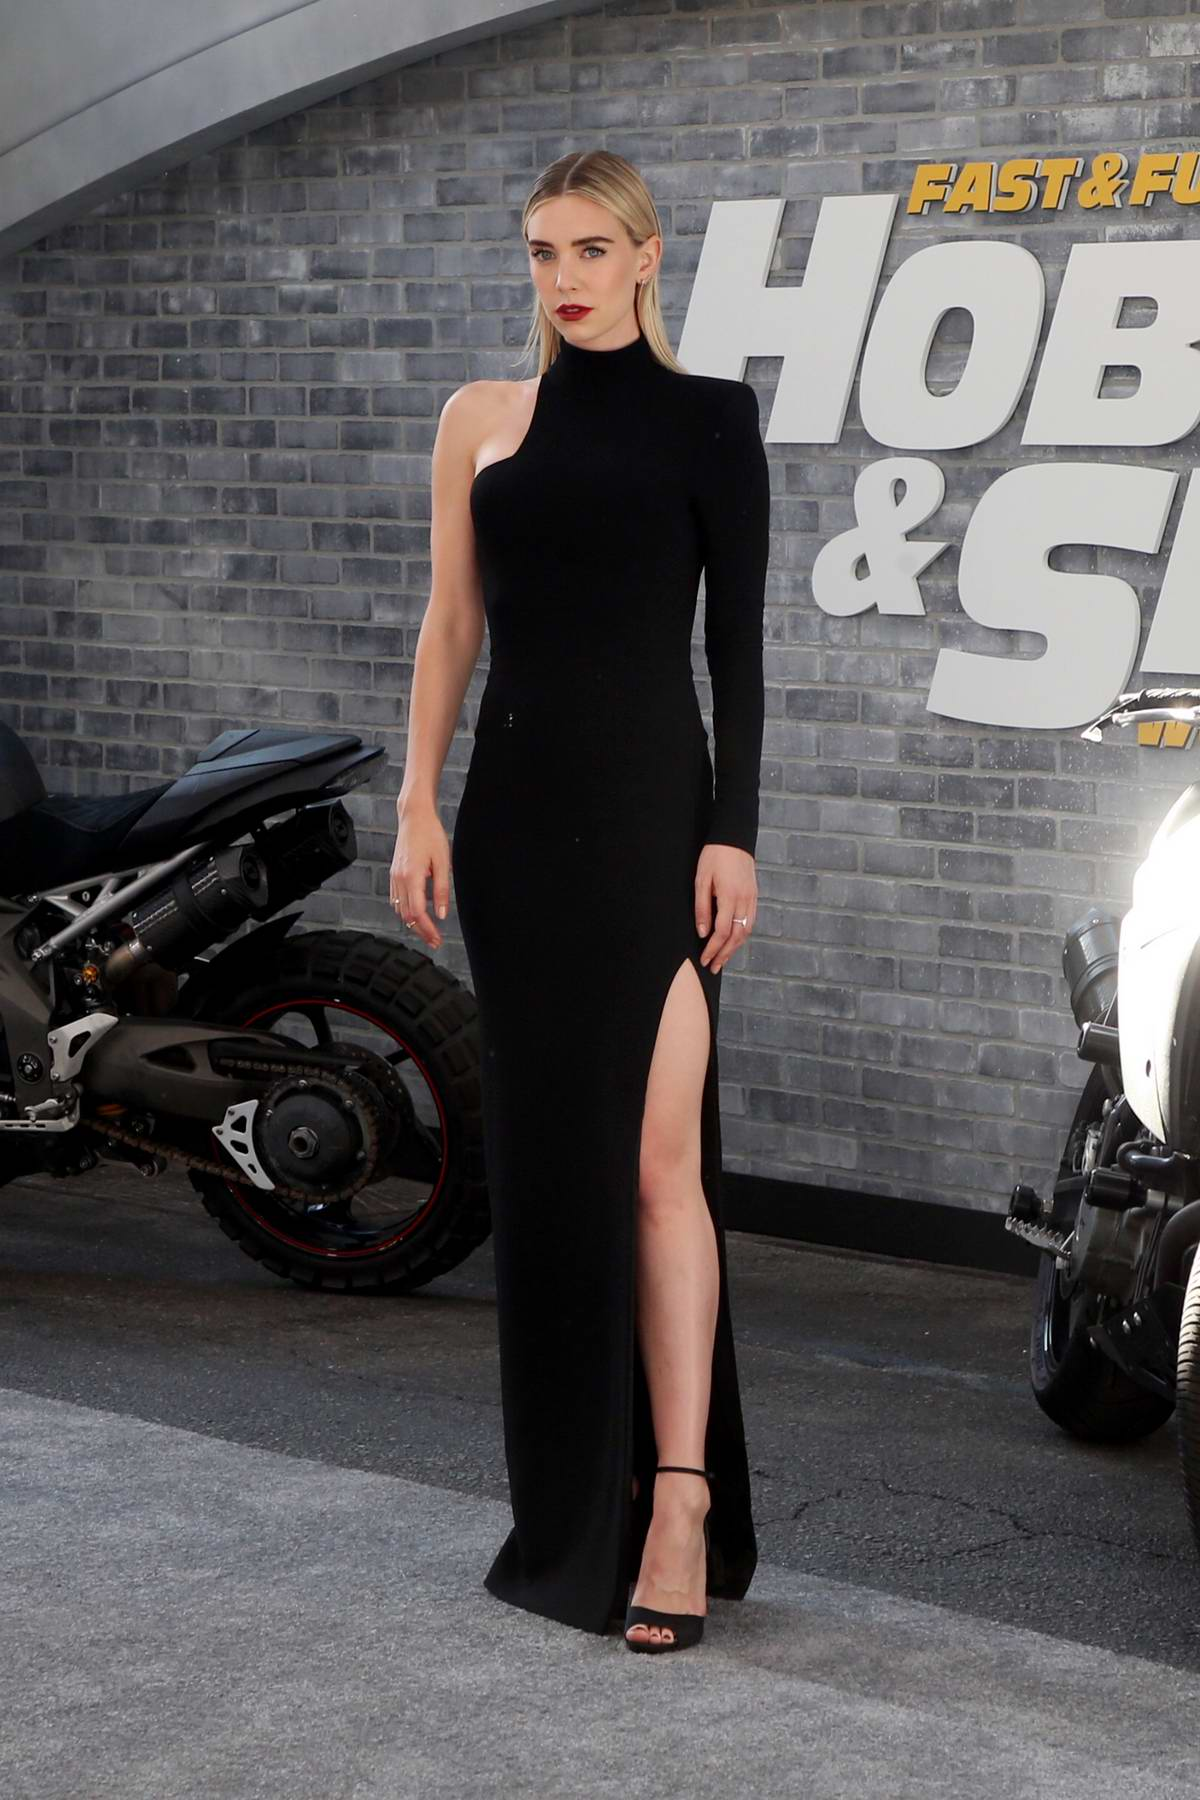 Vanessa Kirby attends the Premiere of 'Fast & Furious Presents: Hobbs & Shaw' at Dolby Theatre in Hollywood, California